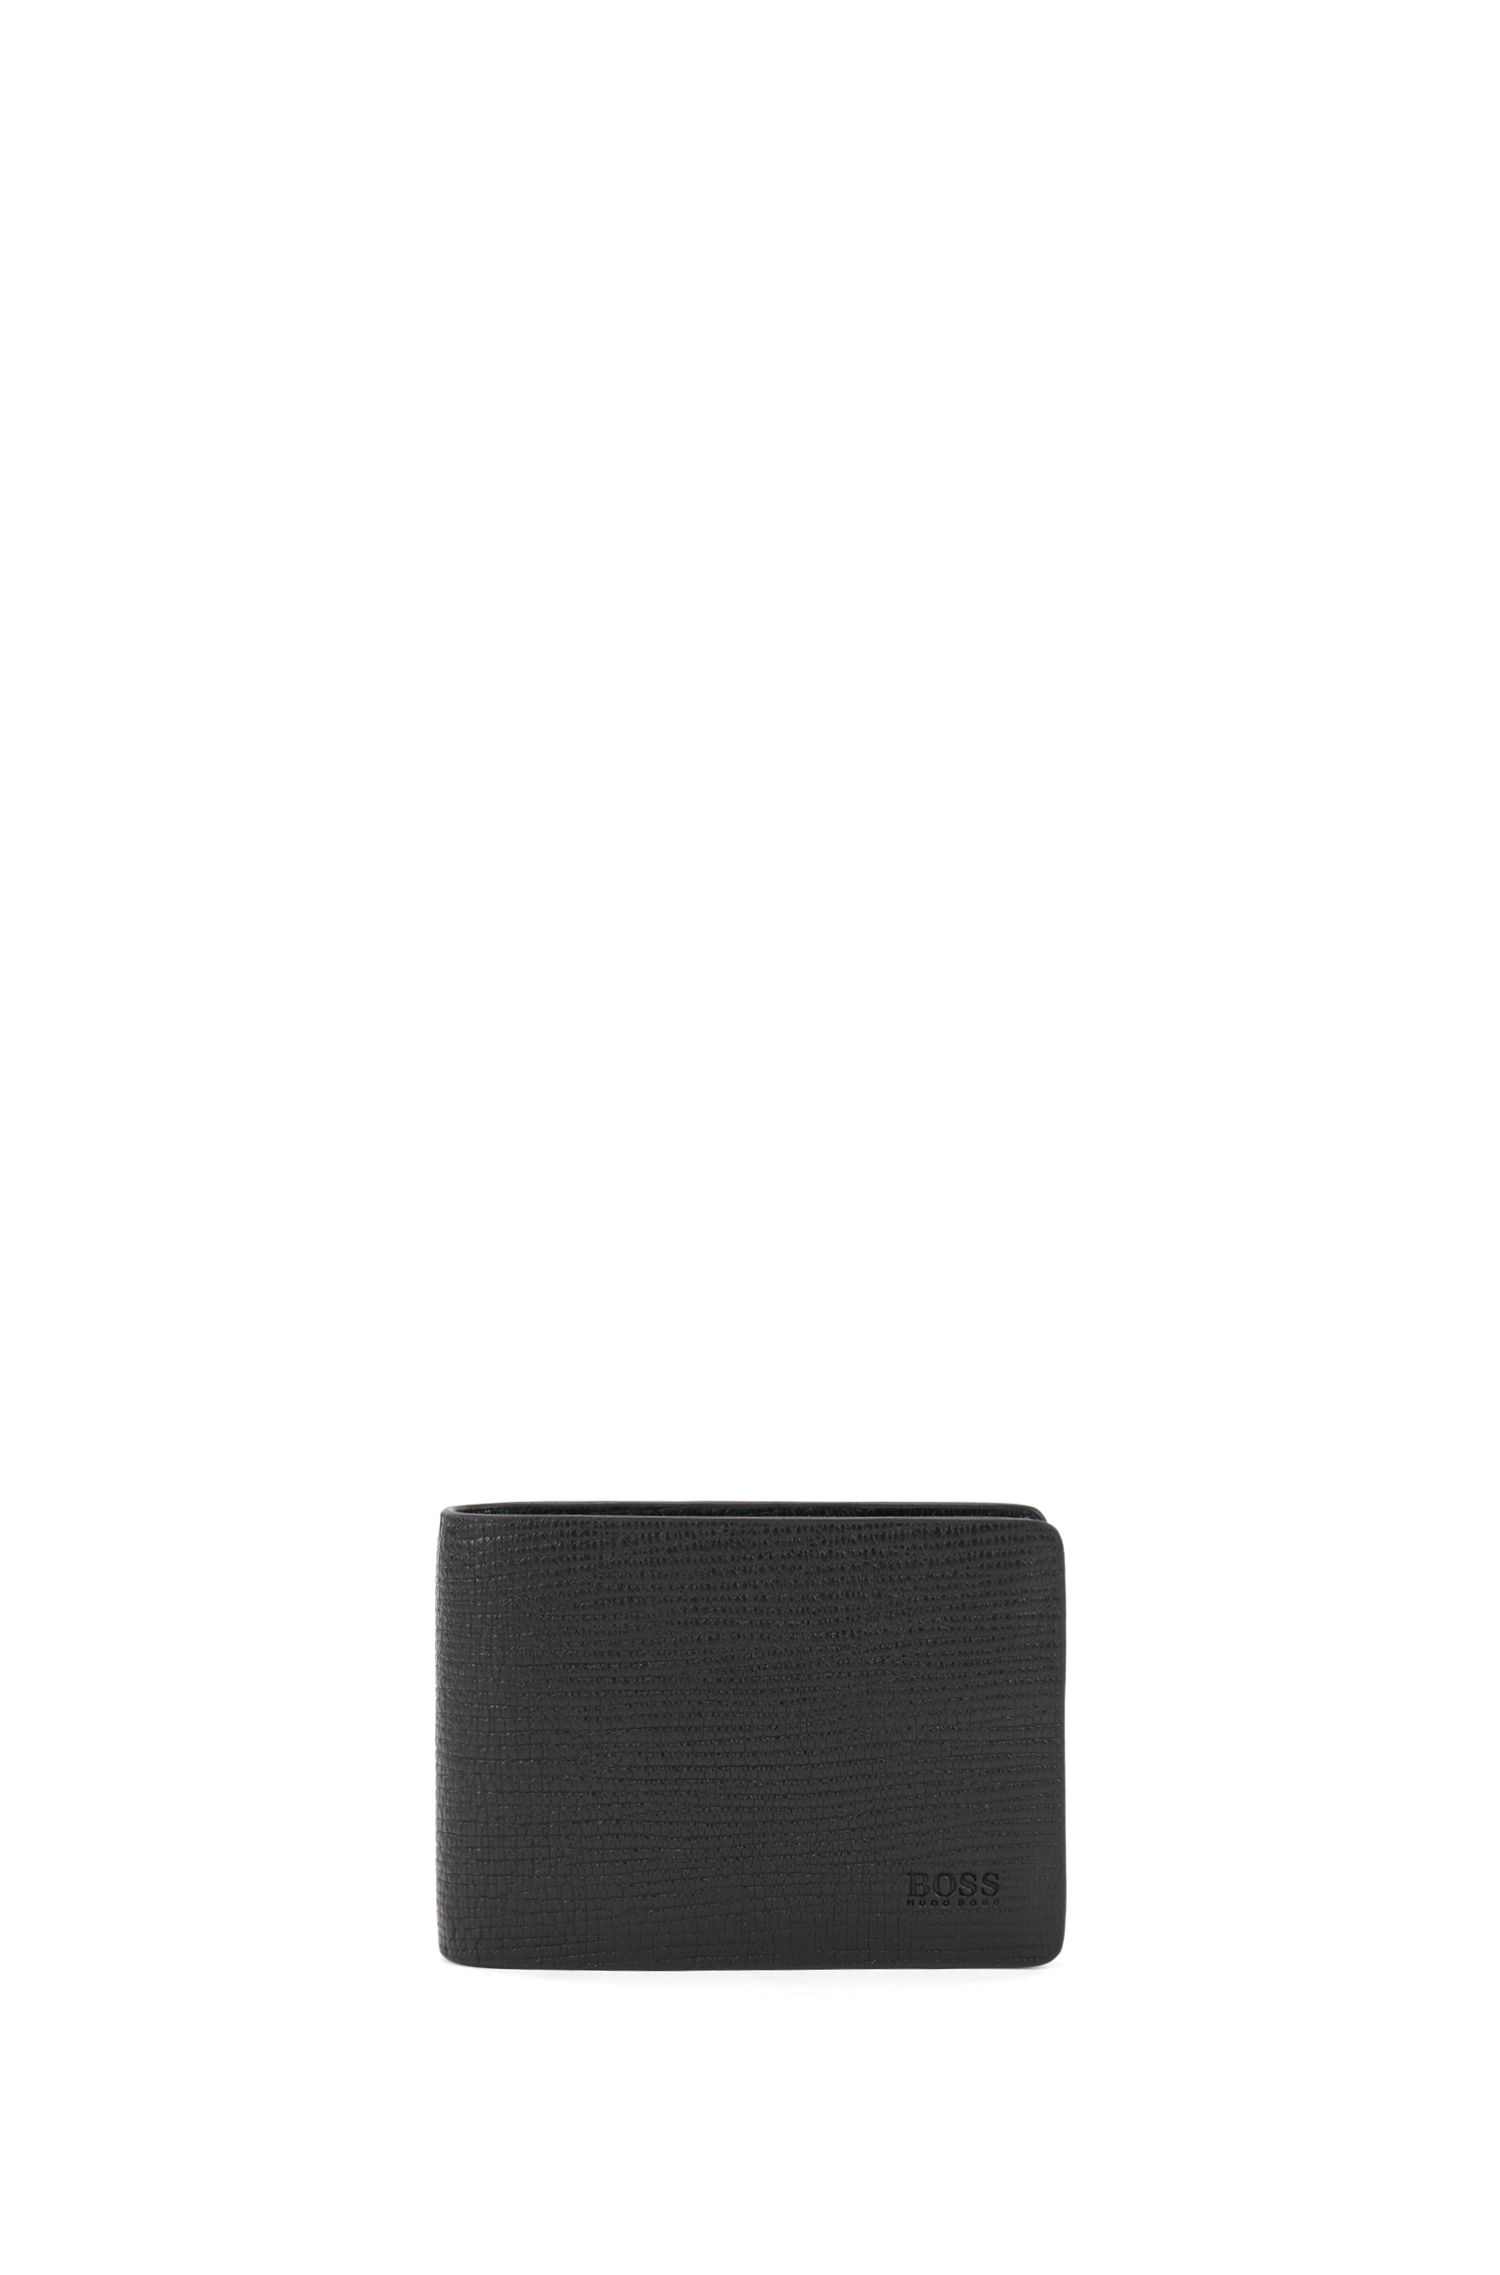 Leather Billfold Wallet | Timeless 6 CC Flap, Black